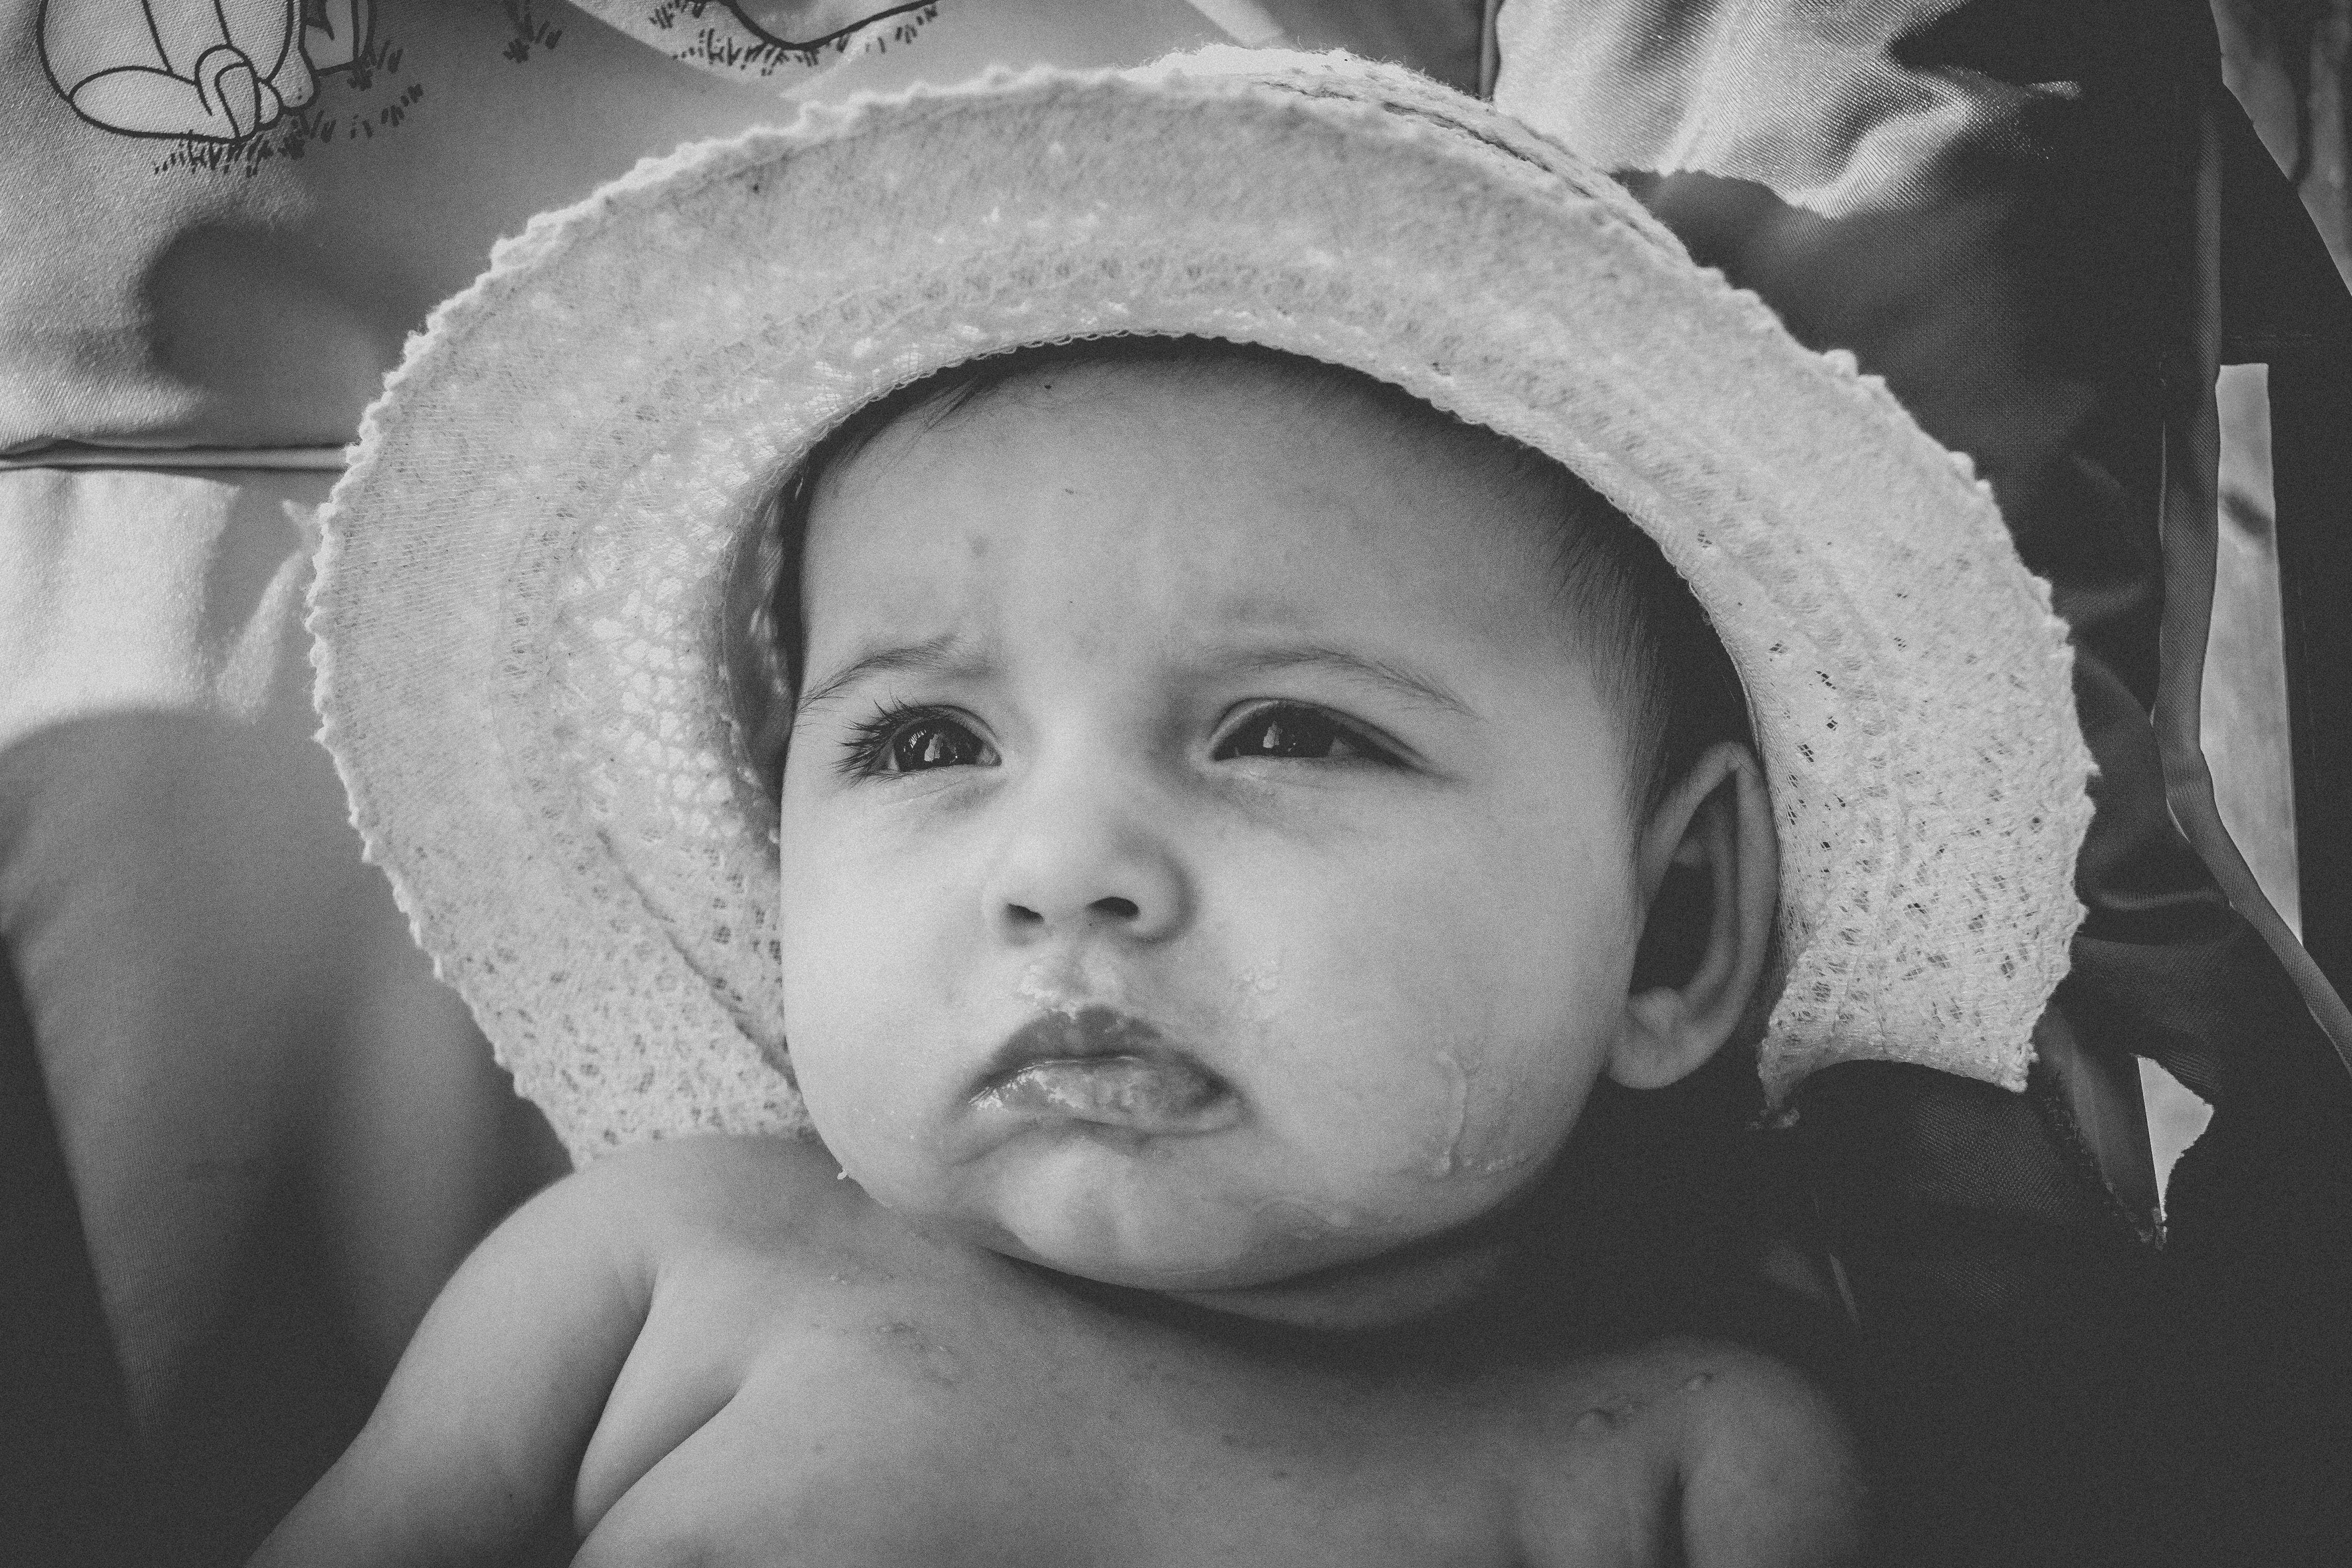 grayscale photography of baby wearing hat